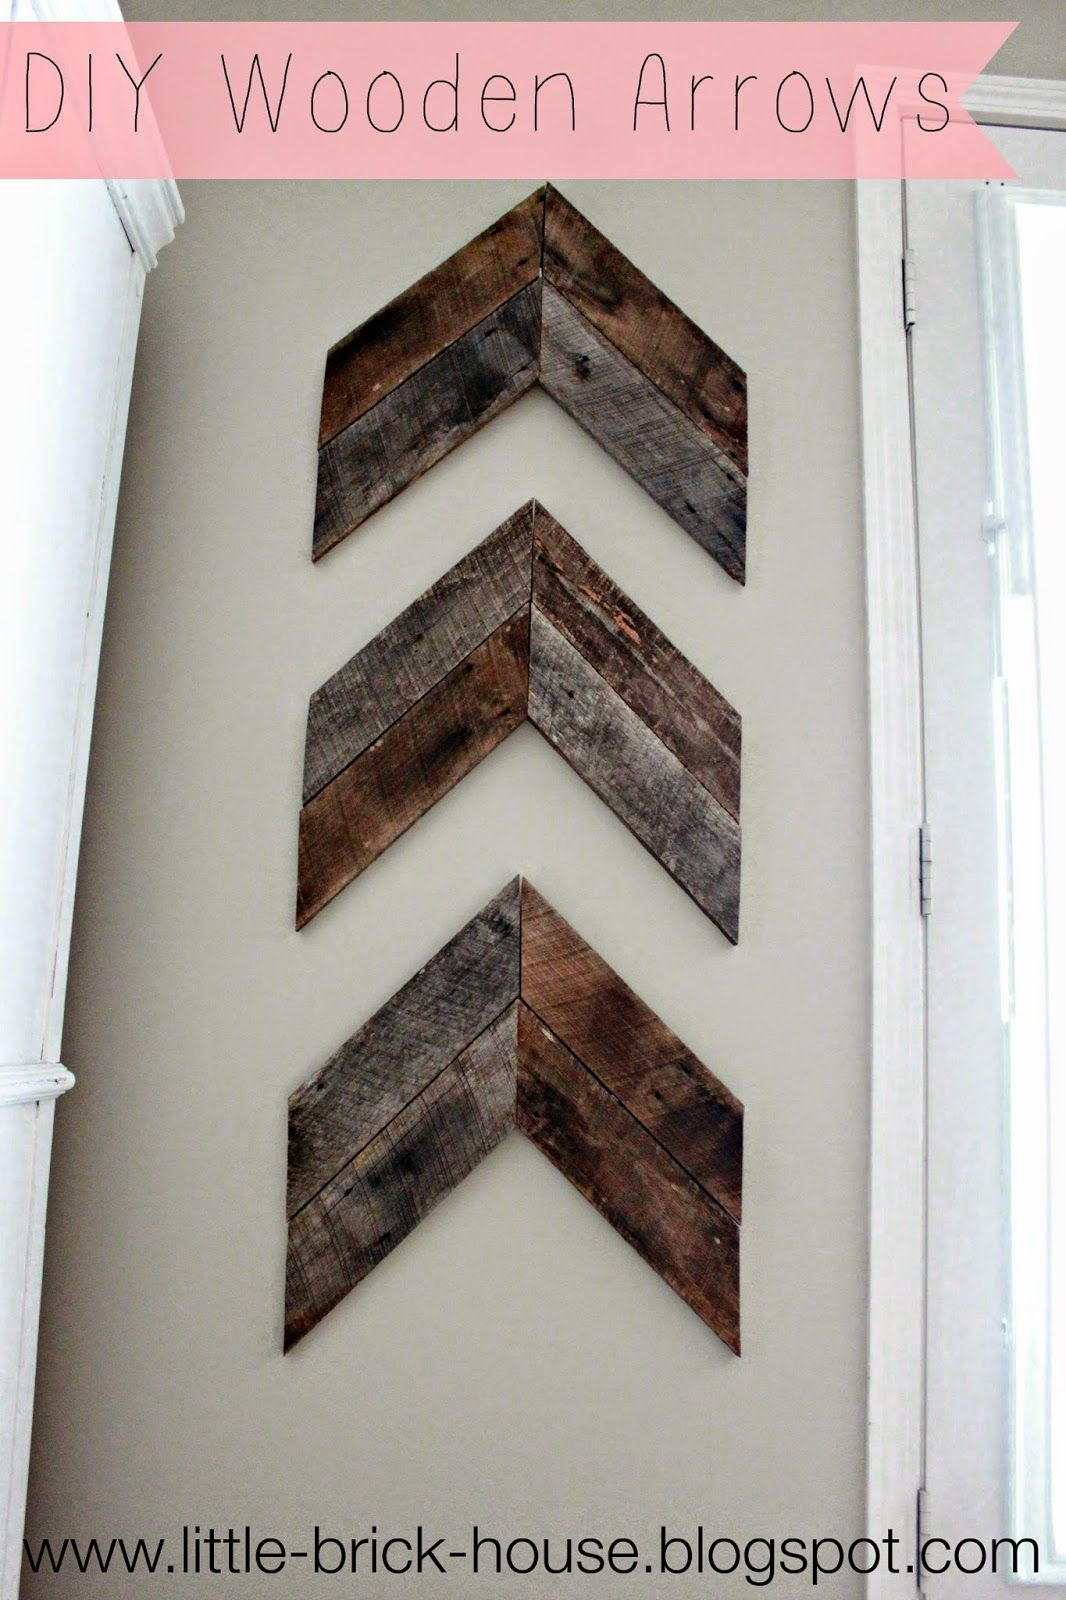 34 Reclaimed Wood Diy Projects You Can Make At Home Reclaimed